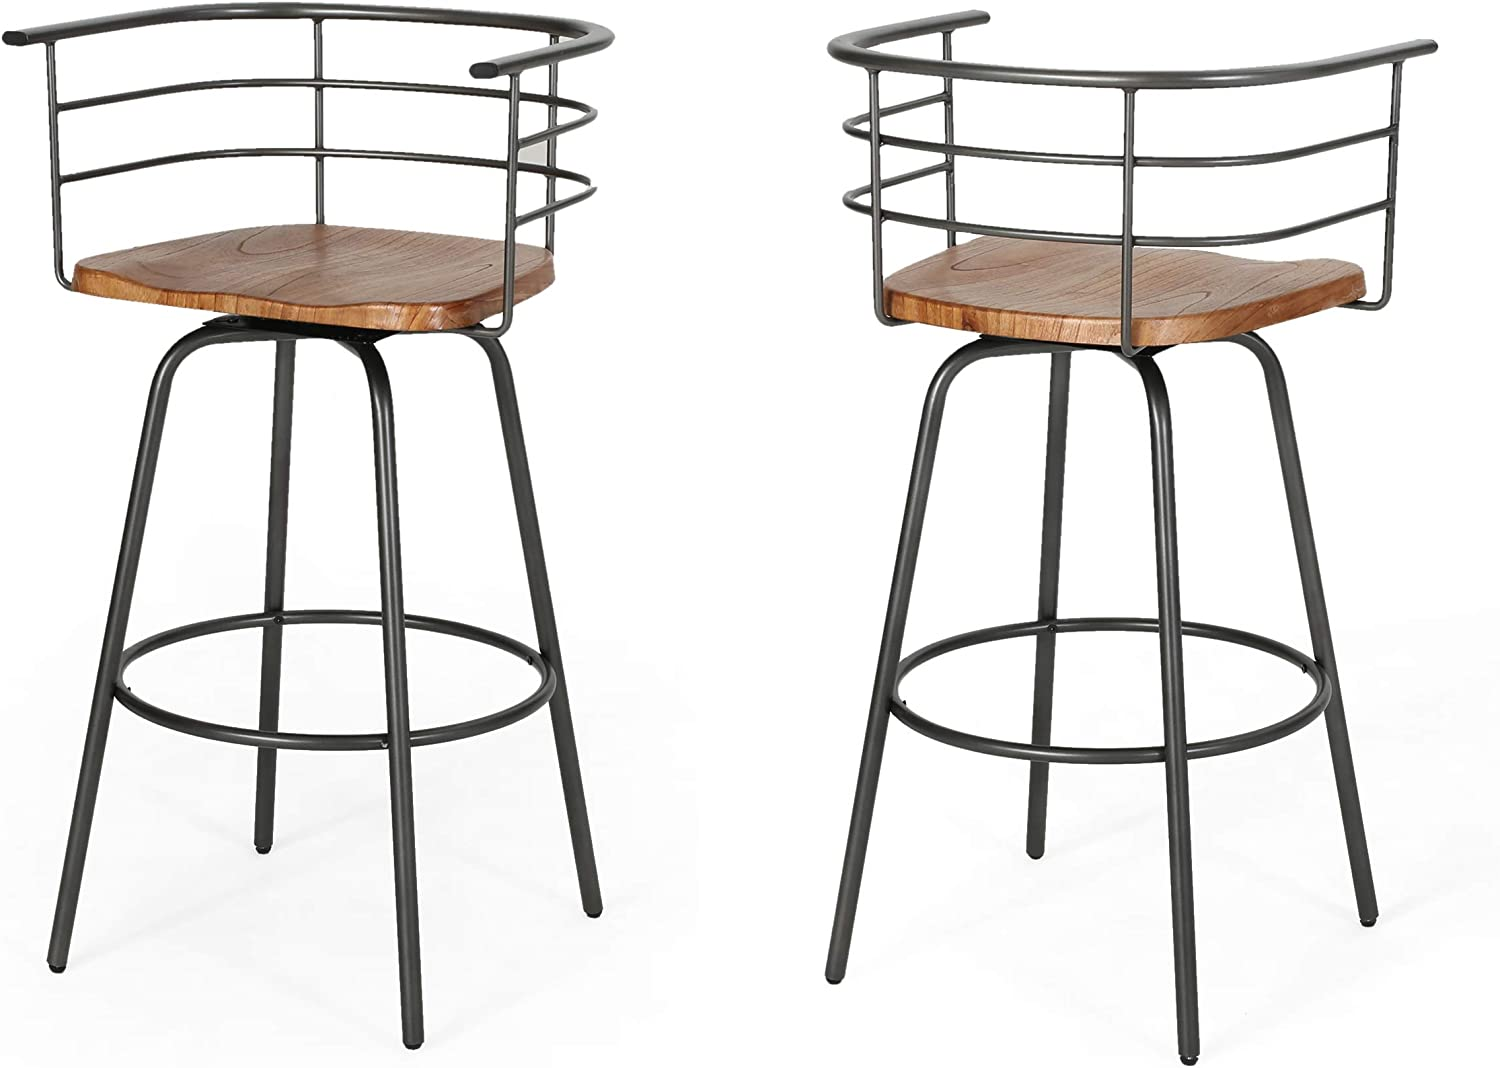 """Christopher Knight Home Jasmine Industrial Modern 29"""" Swivel Barstool with Rubberwood Seat (Set of 2), Dark Brown and Gray"""